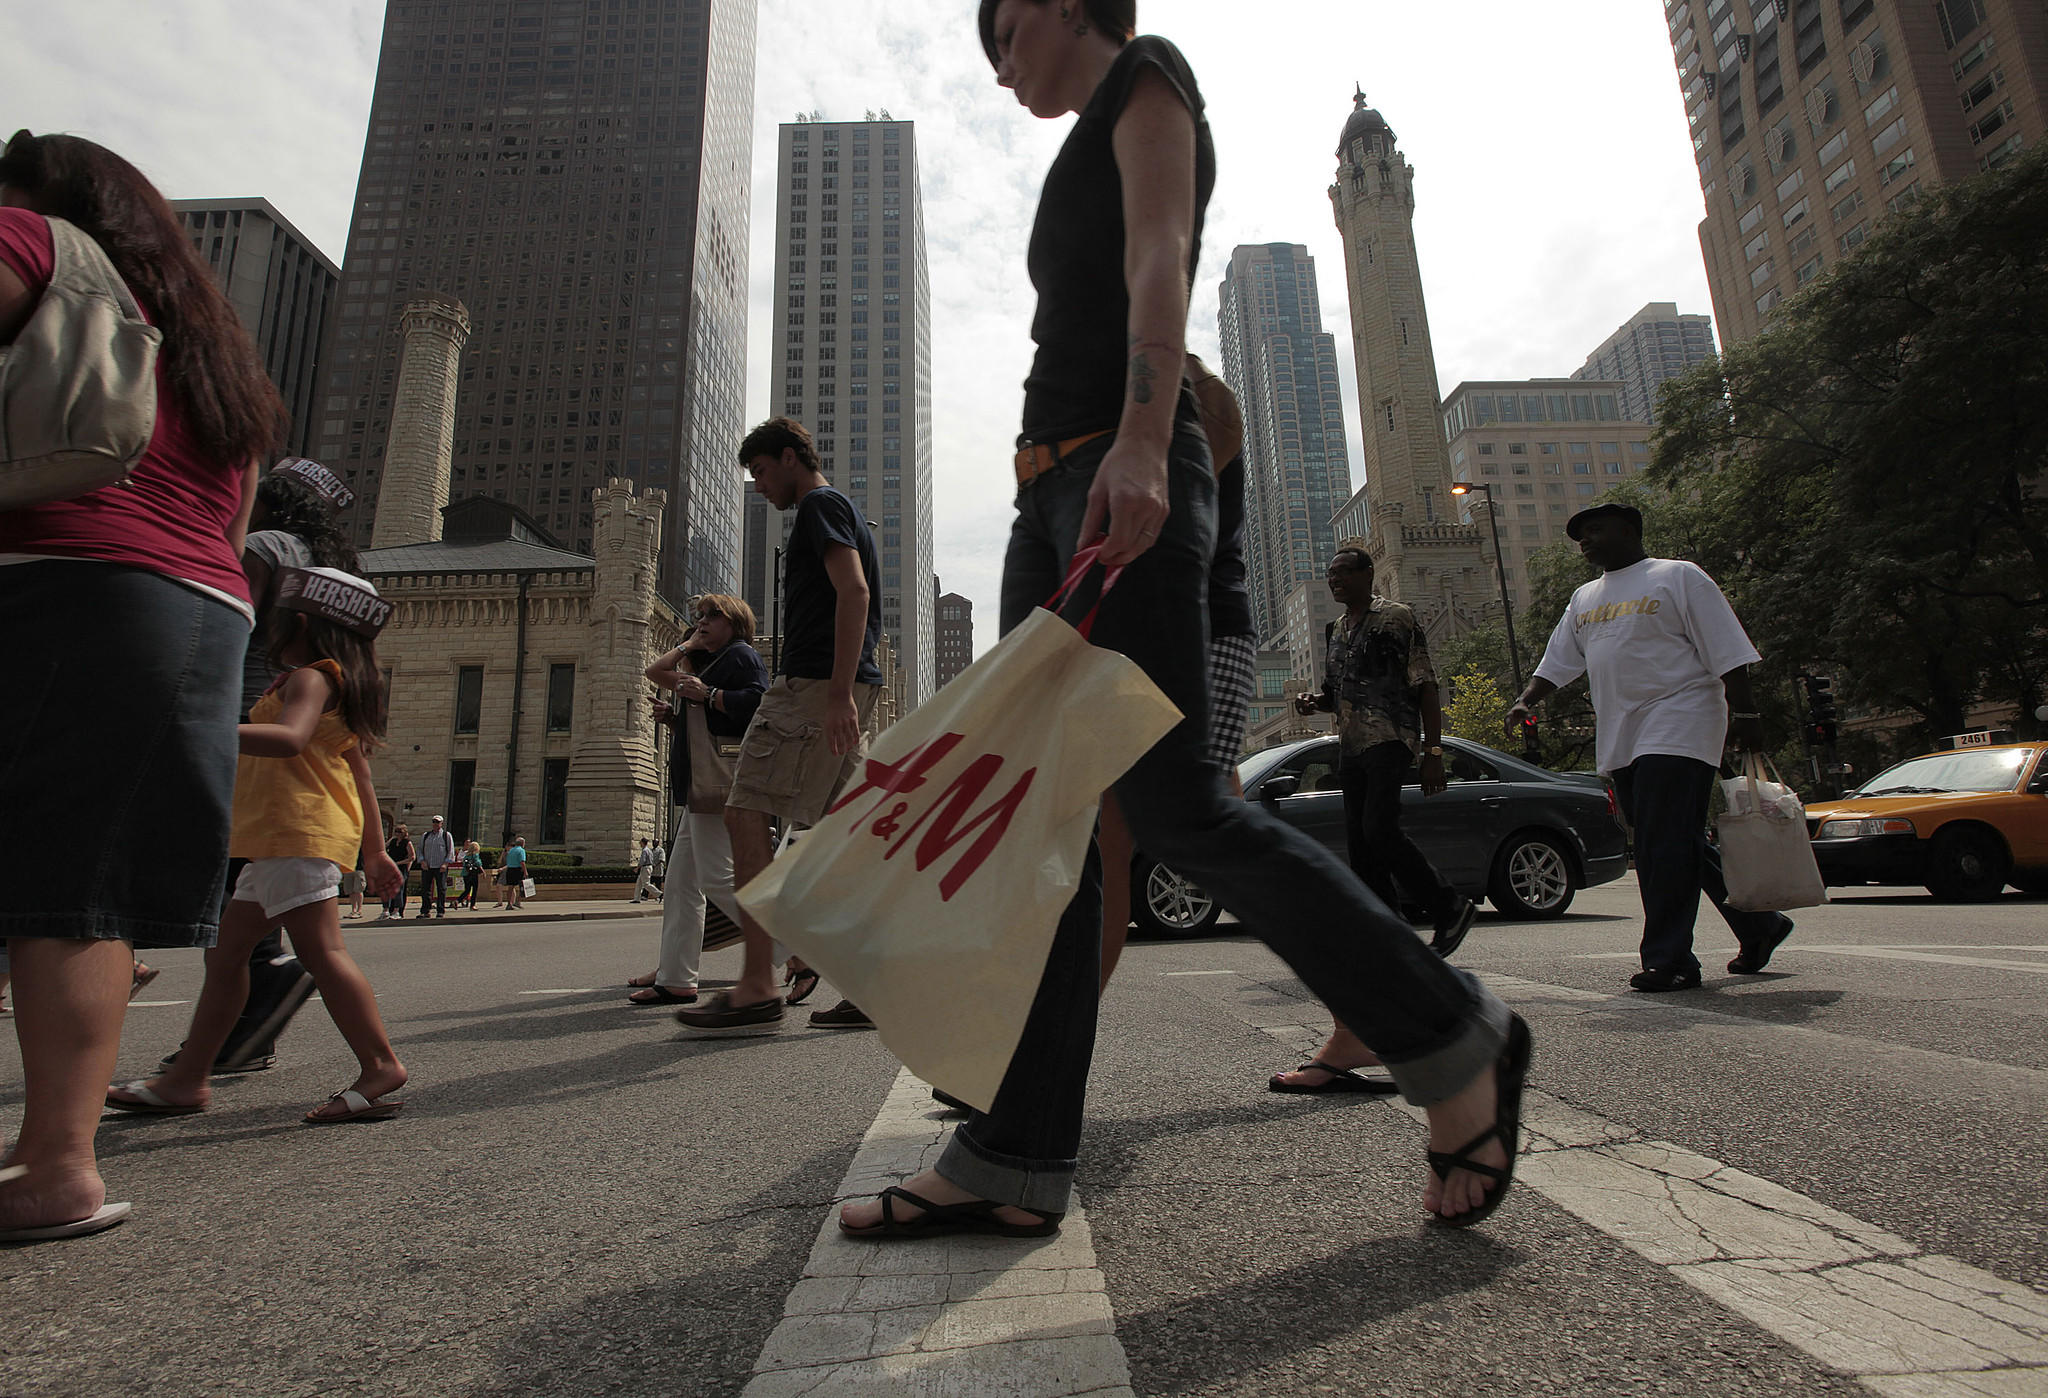 Pedestrians and shoppers near Water Tower Place on North Michigan Avenue in Chicago on Aug. 17, 2011.